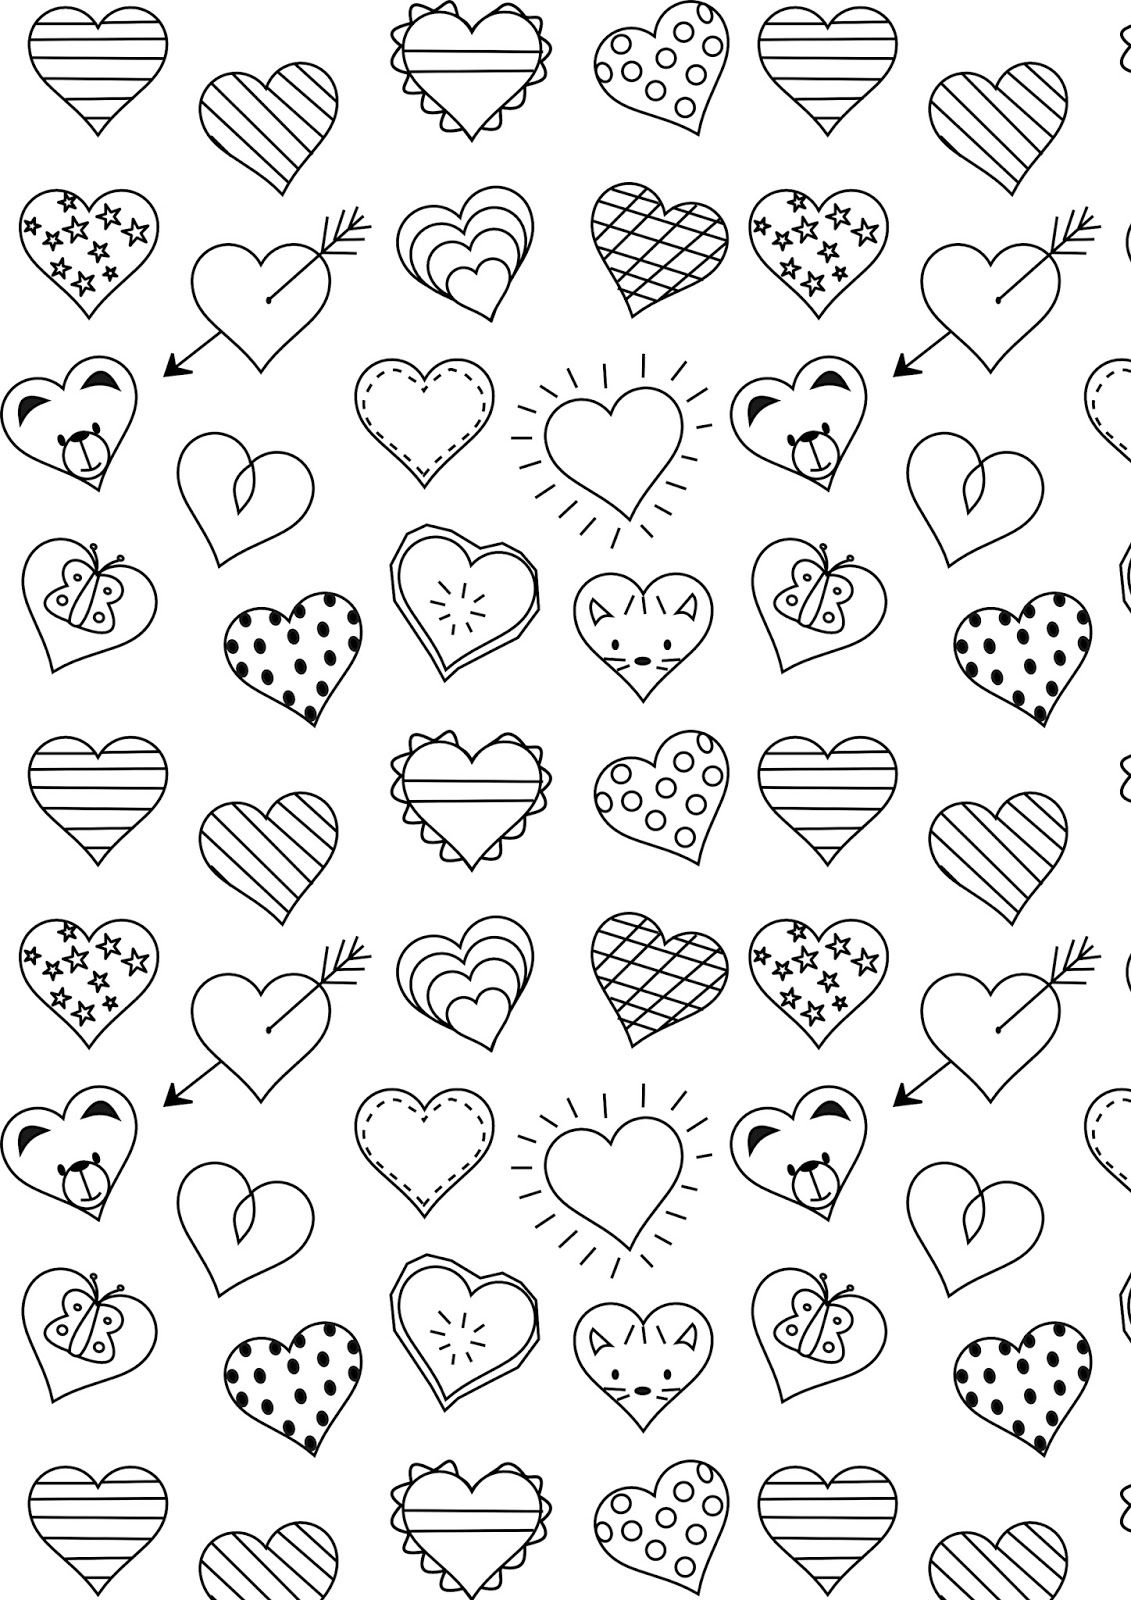 free printable heart coloring pages for kids free printable heart coloring pages for kids kids for pages coloring heart free printable